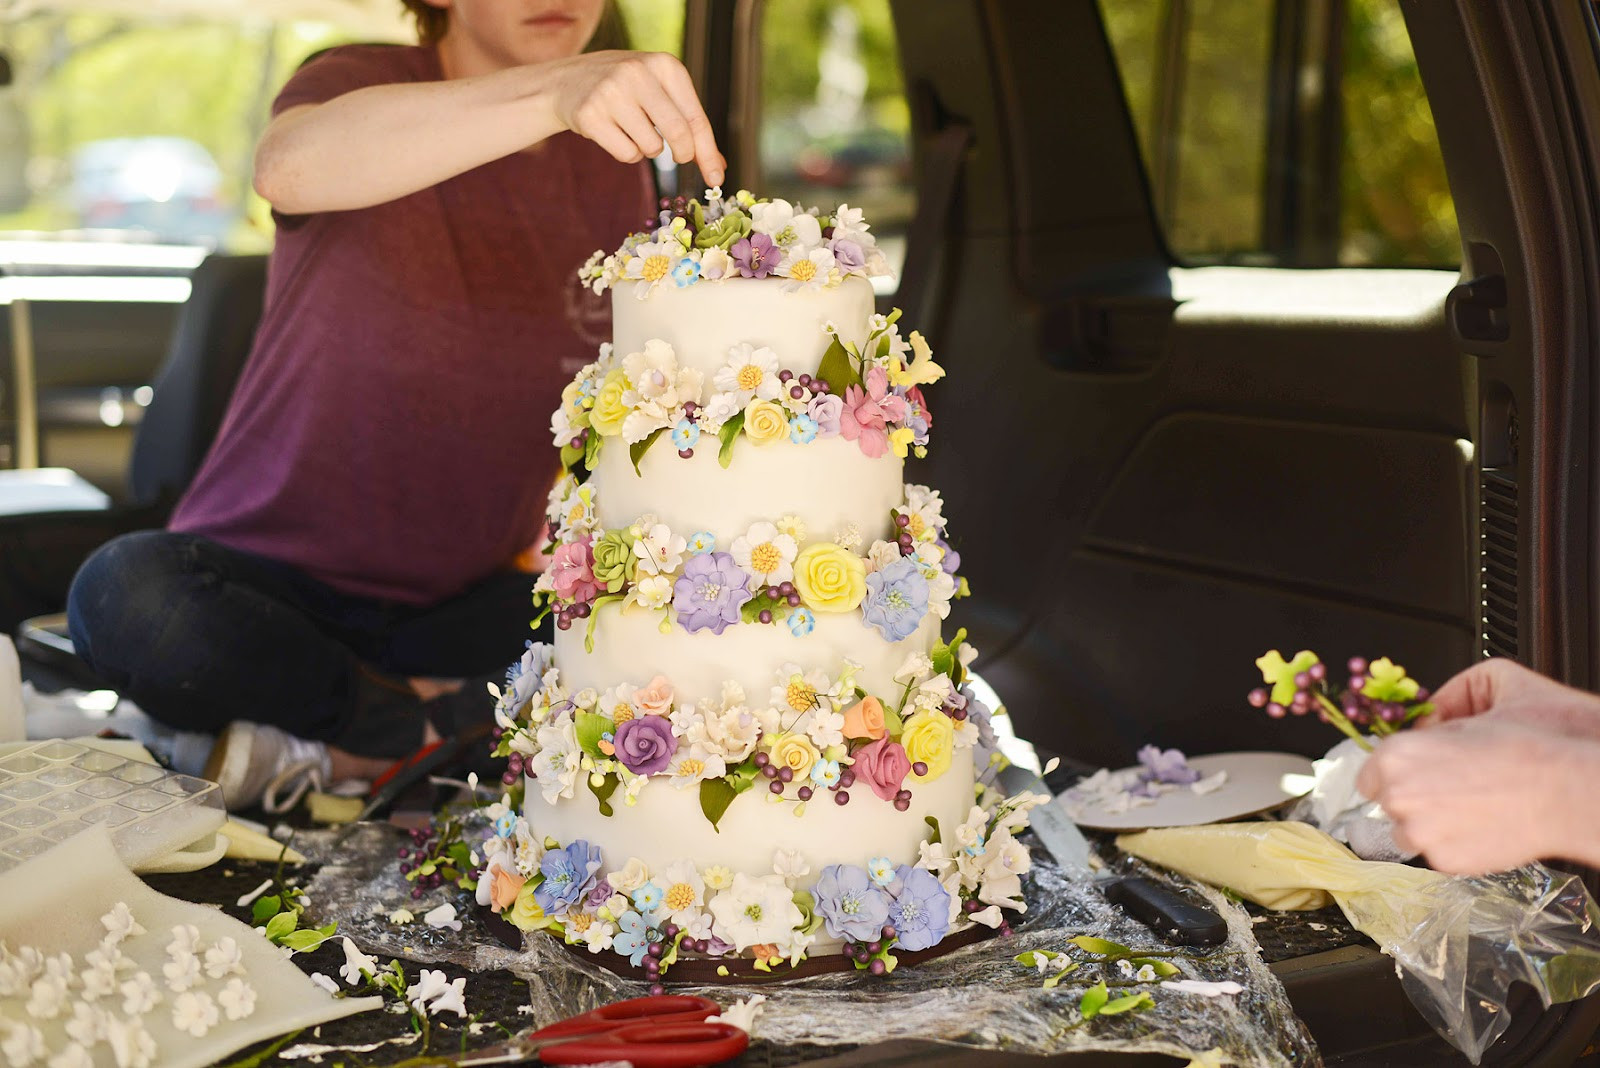 Hippie Wedding Cakes  FORTY FOUR SUNSETS PAMELA LOVE HIPPIE WEDDING PERFECTION